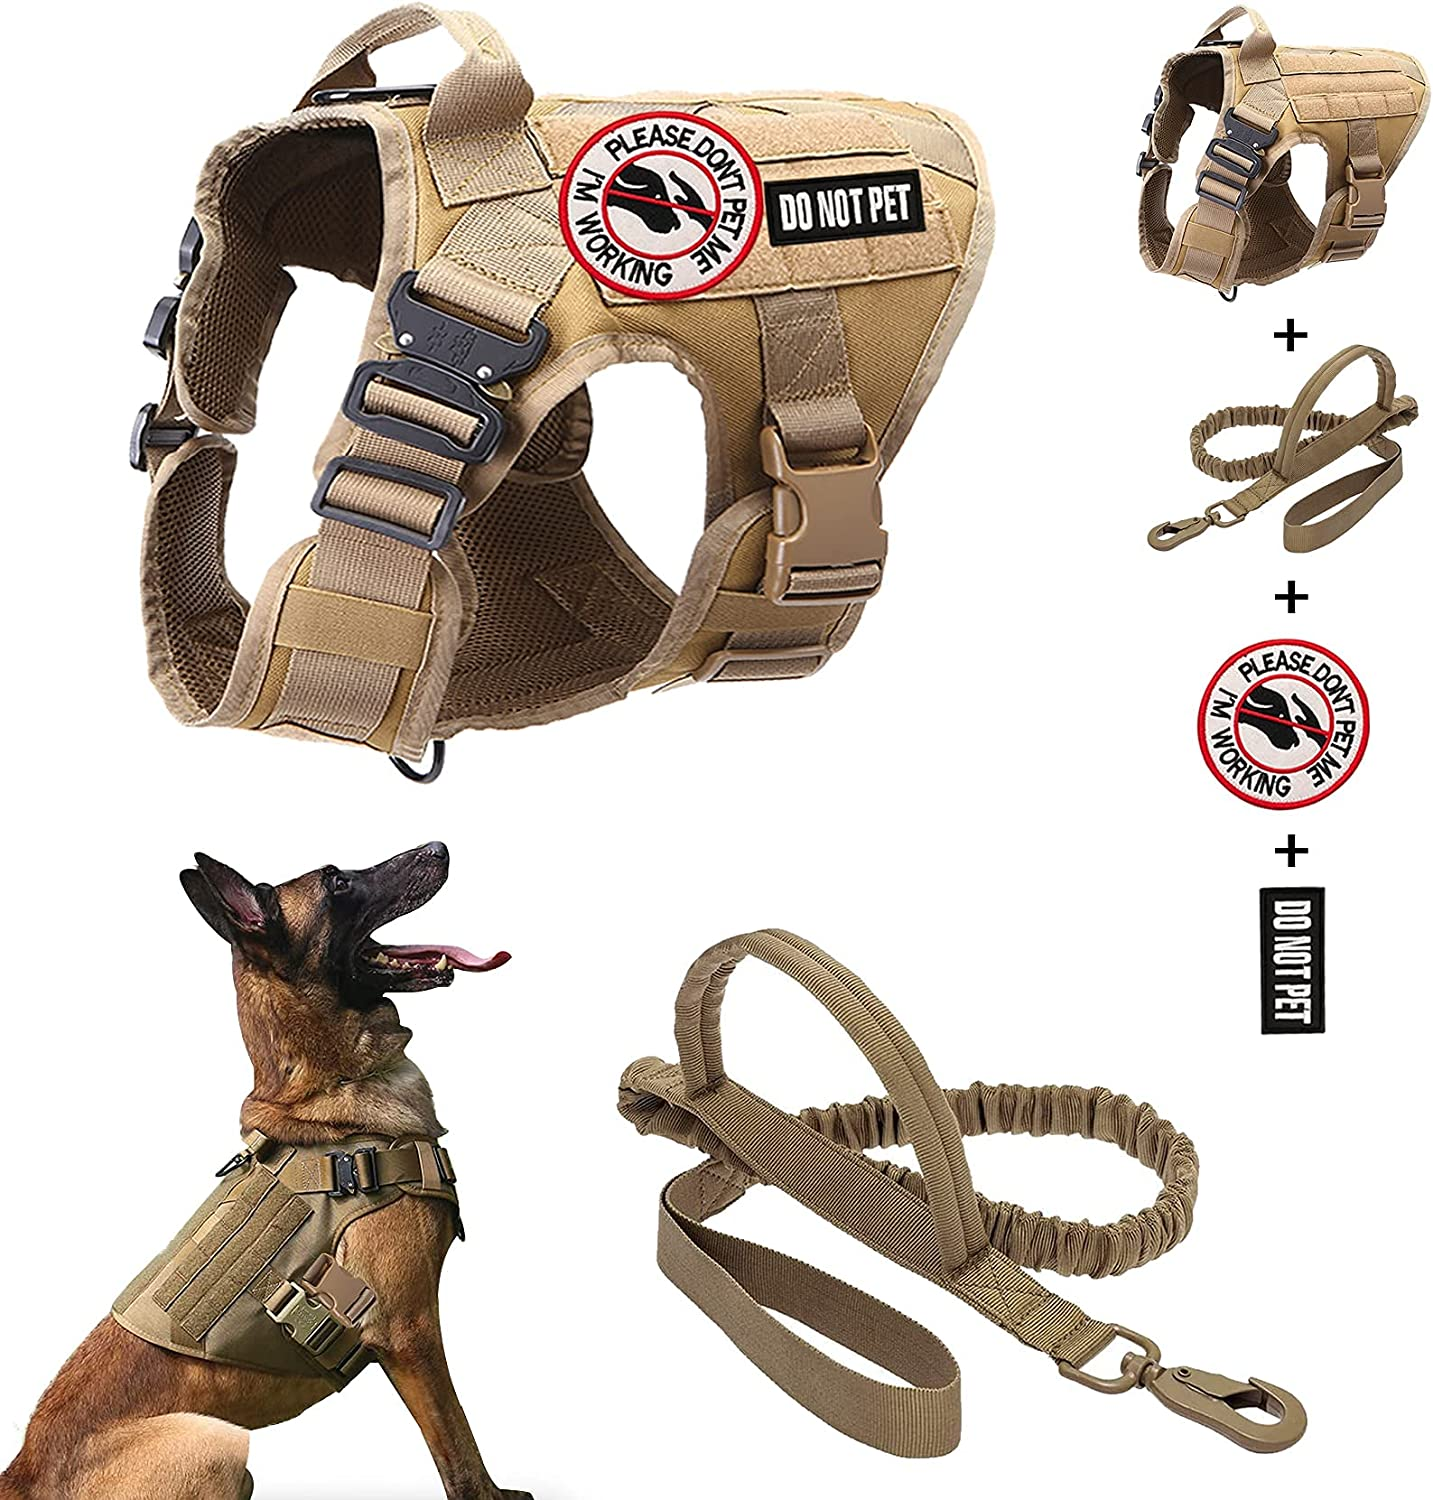 Tactical Dog Vest Harness and Over item handling Leash 2 Set Service Patch Working Latest item